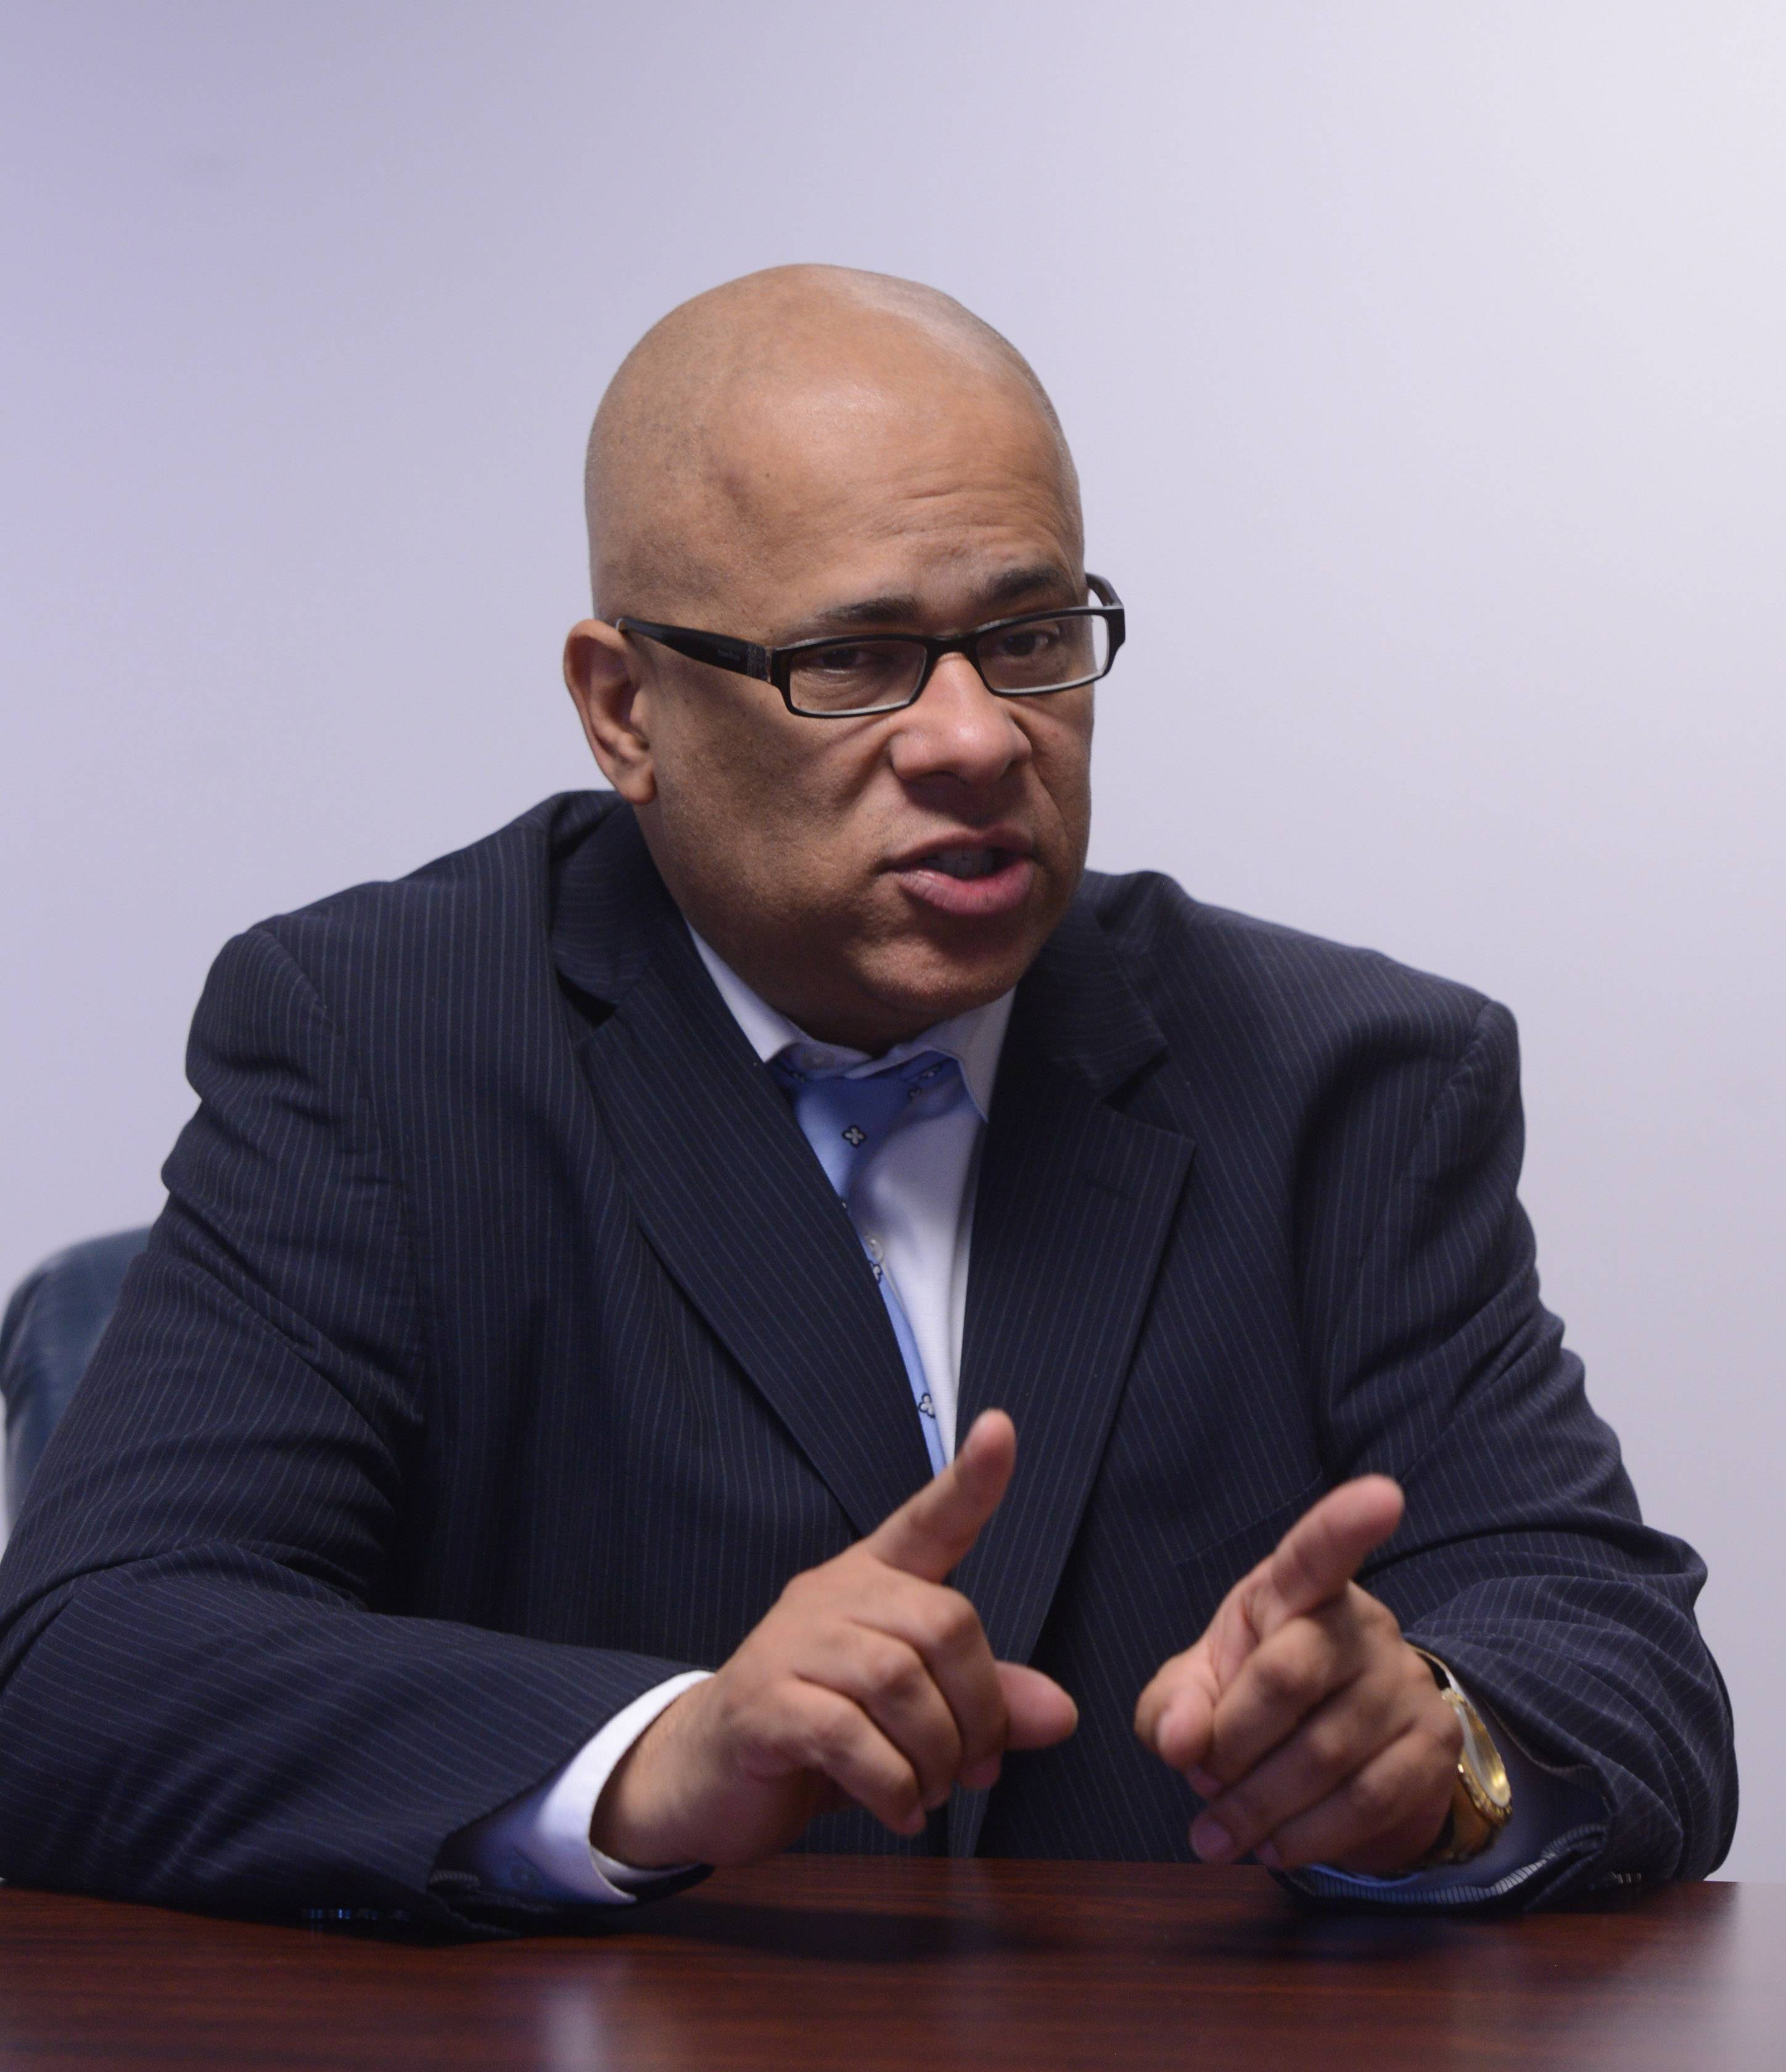 Democratic candidate for Governor Tio Hardiman meets with the Daily Herald editorial board.